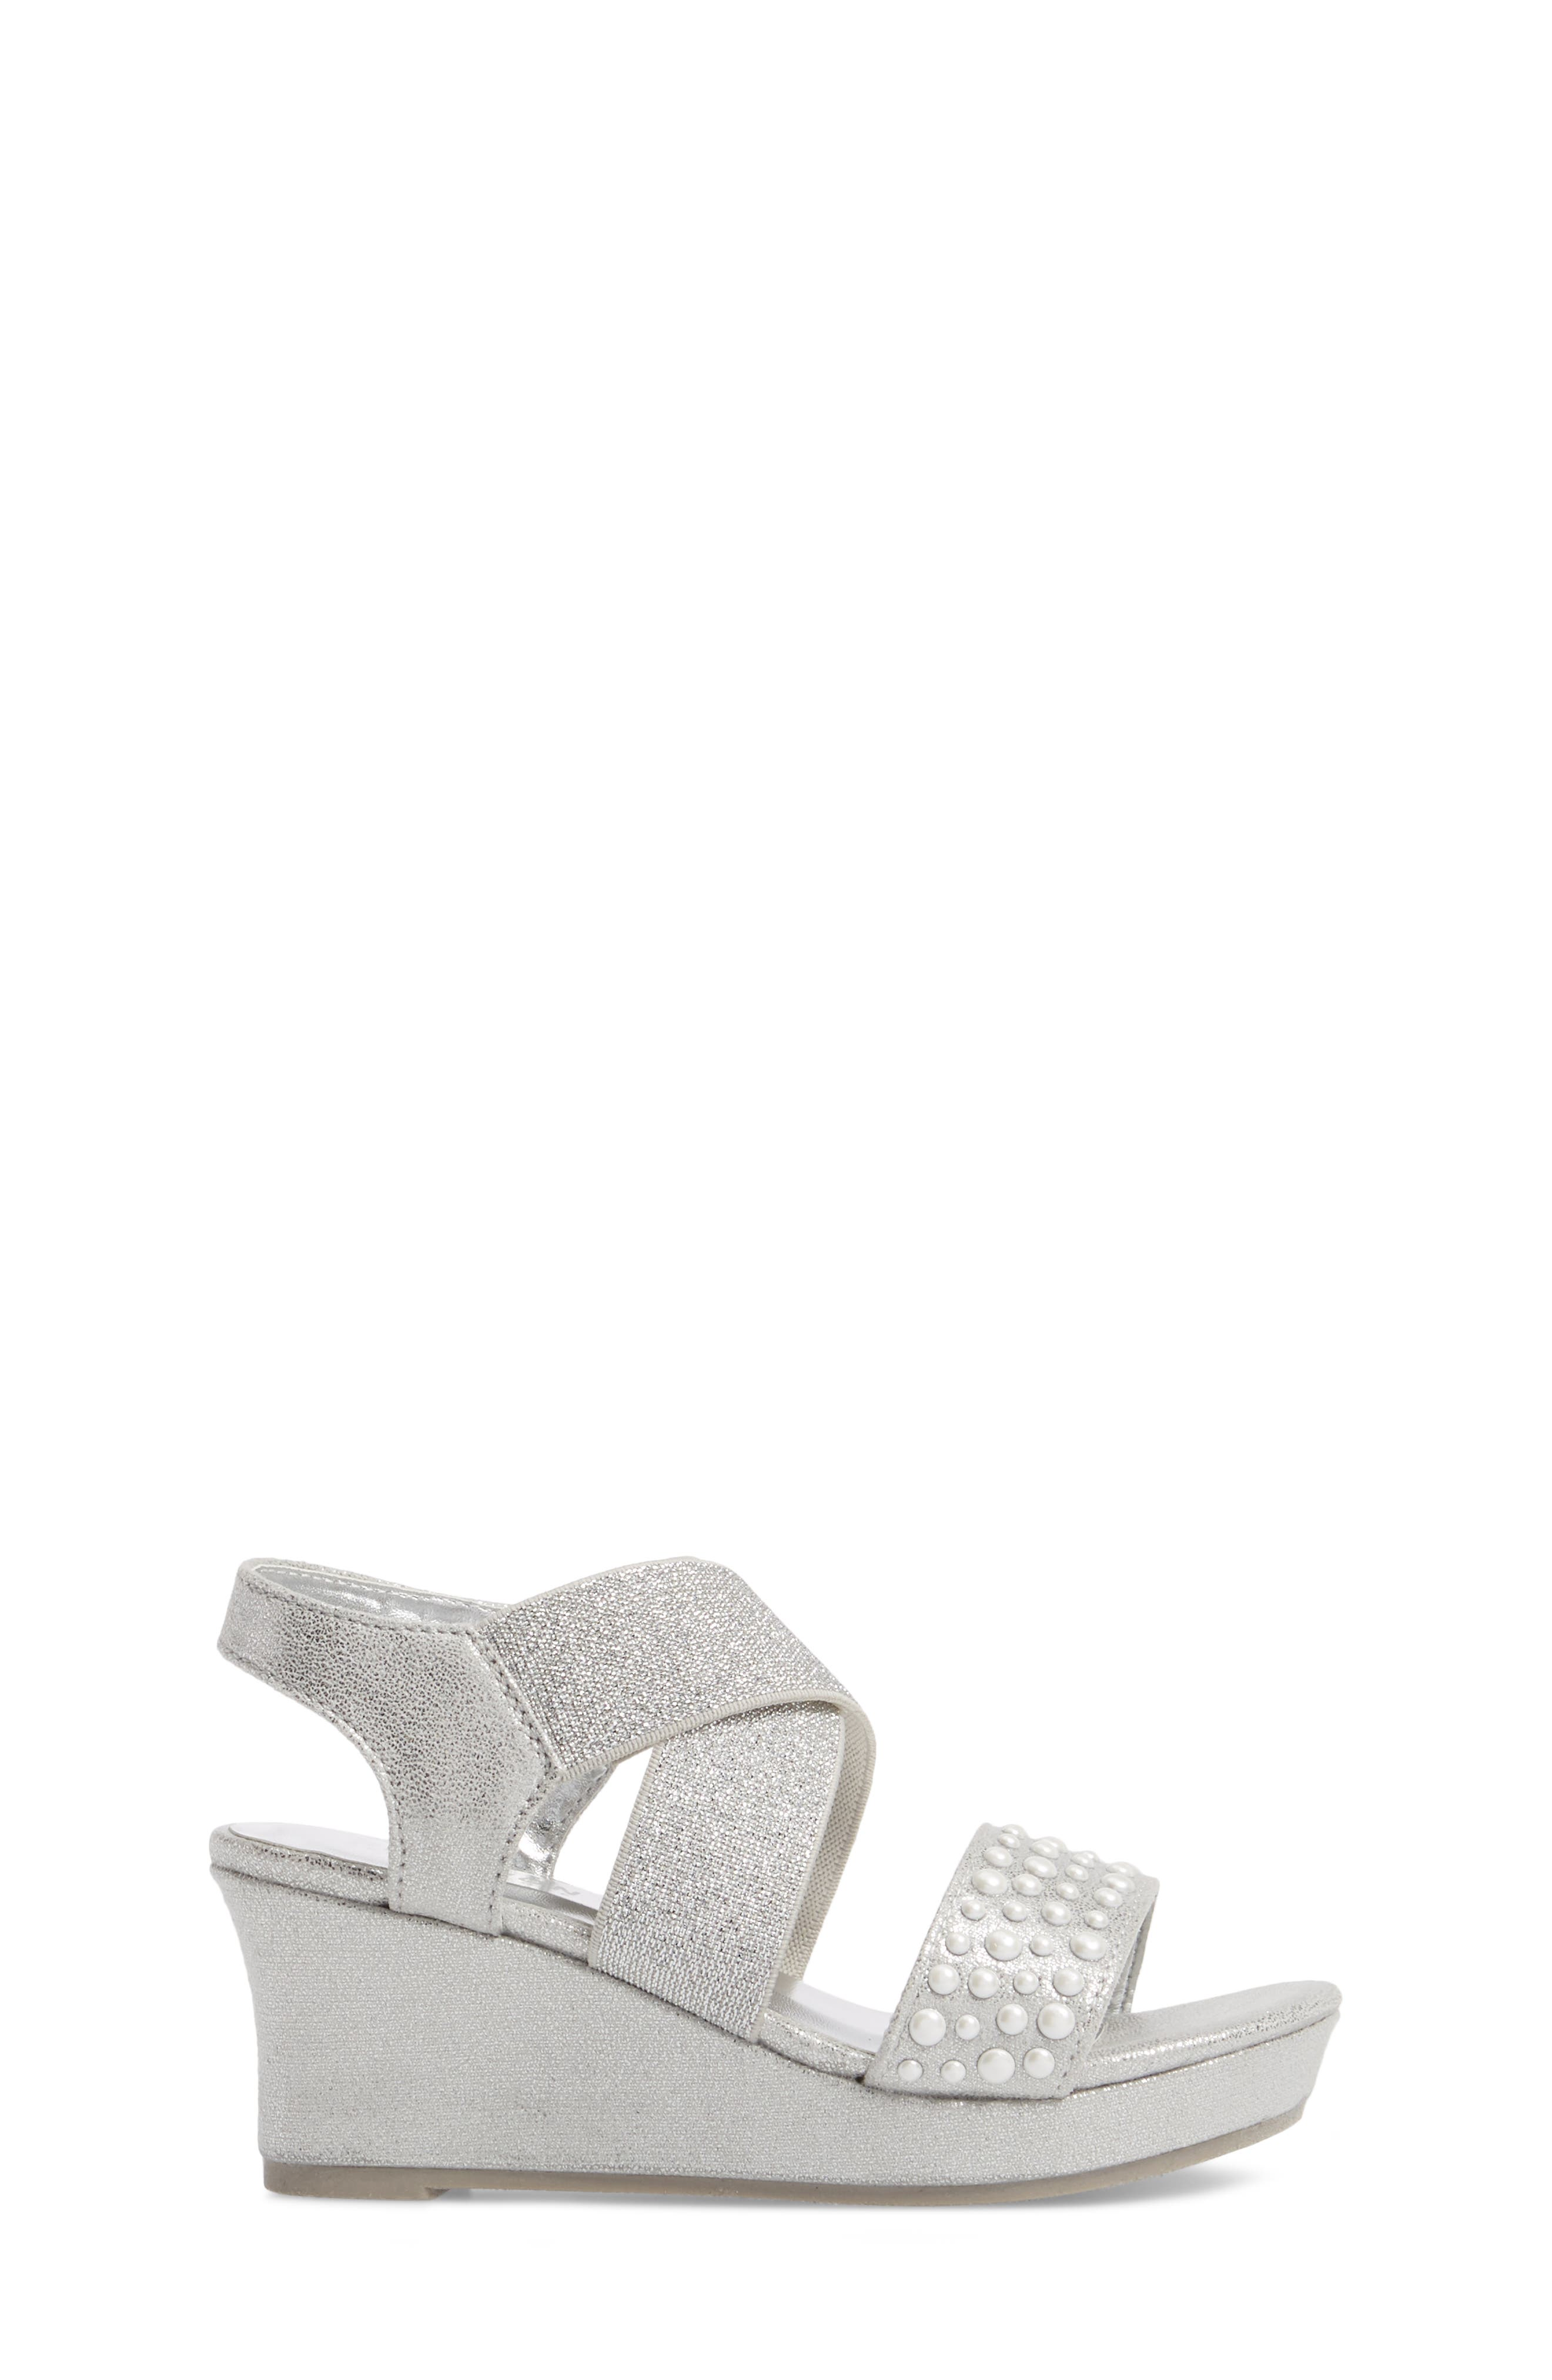 Reed Glimmer Wedge Sandal,                             Alternate thumbnail 3, color,                             044